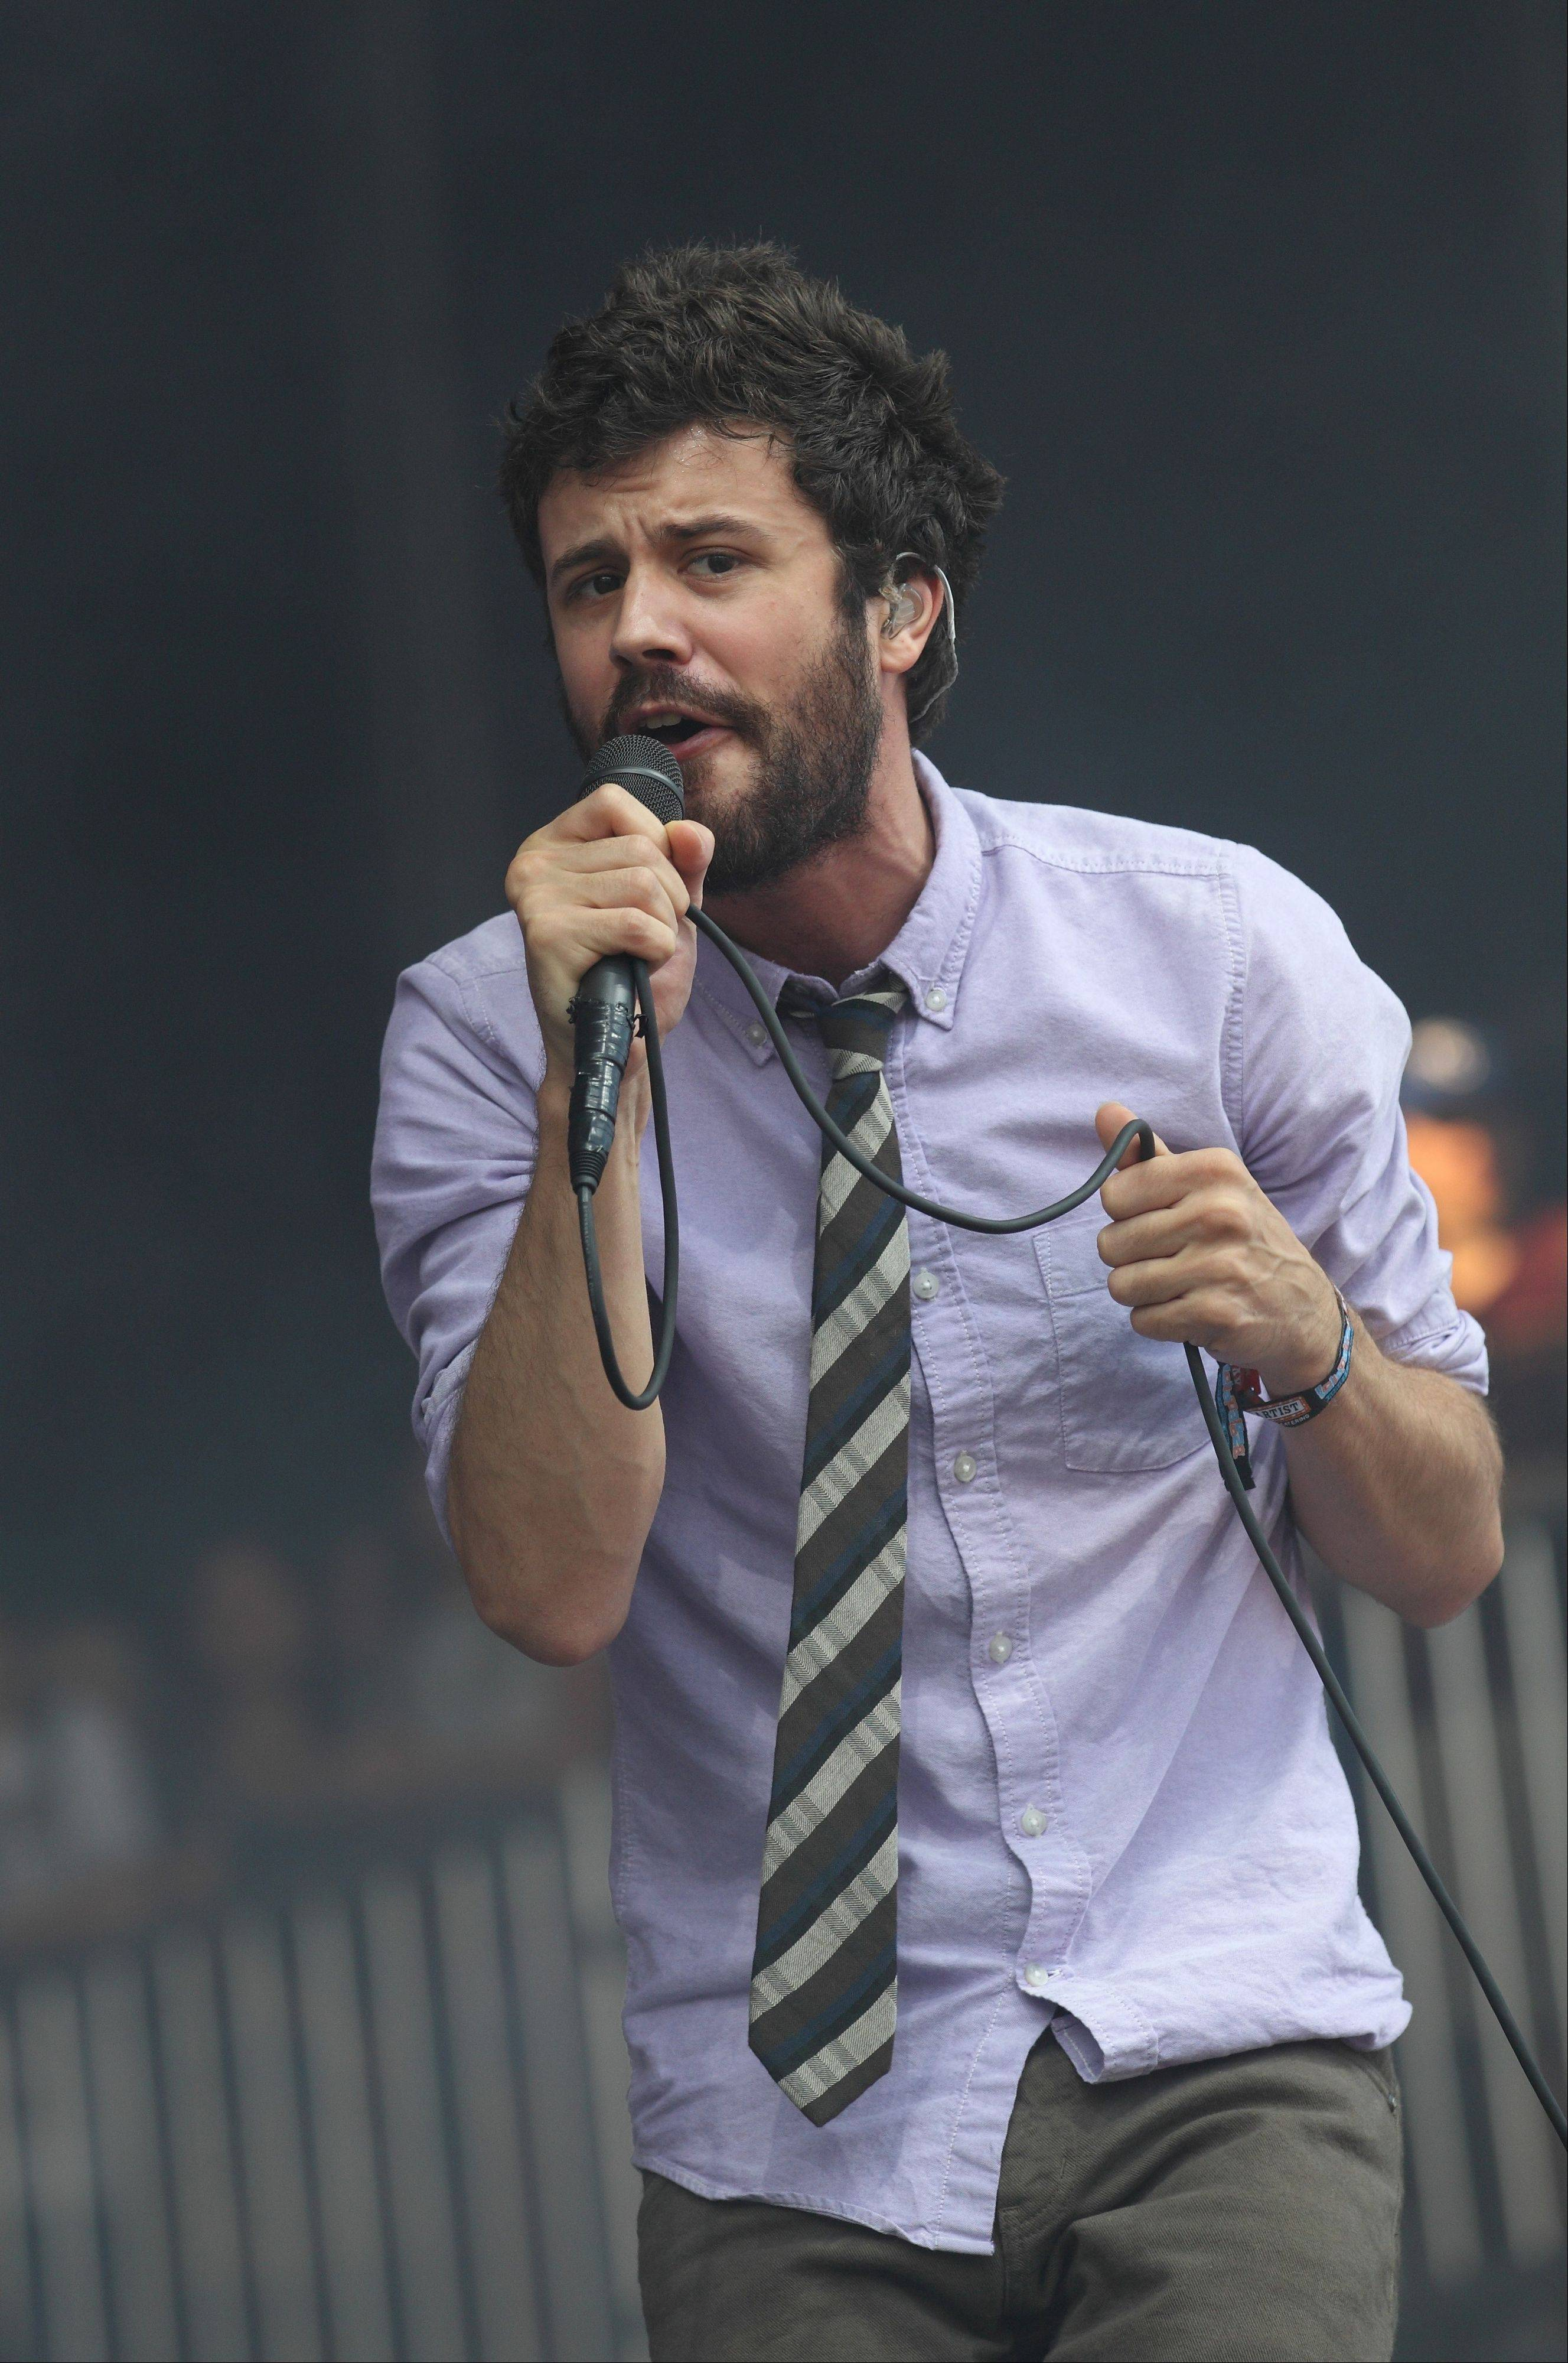 Michael Angelakos of the electro-pop band Passion Pit performs at the Lollapalooza music festival in Chicago's Grant Park on Friday, Aug. 3, 2012. This year, Passion Pit sold out Madison Square Garden.